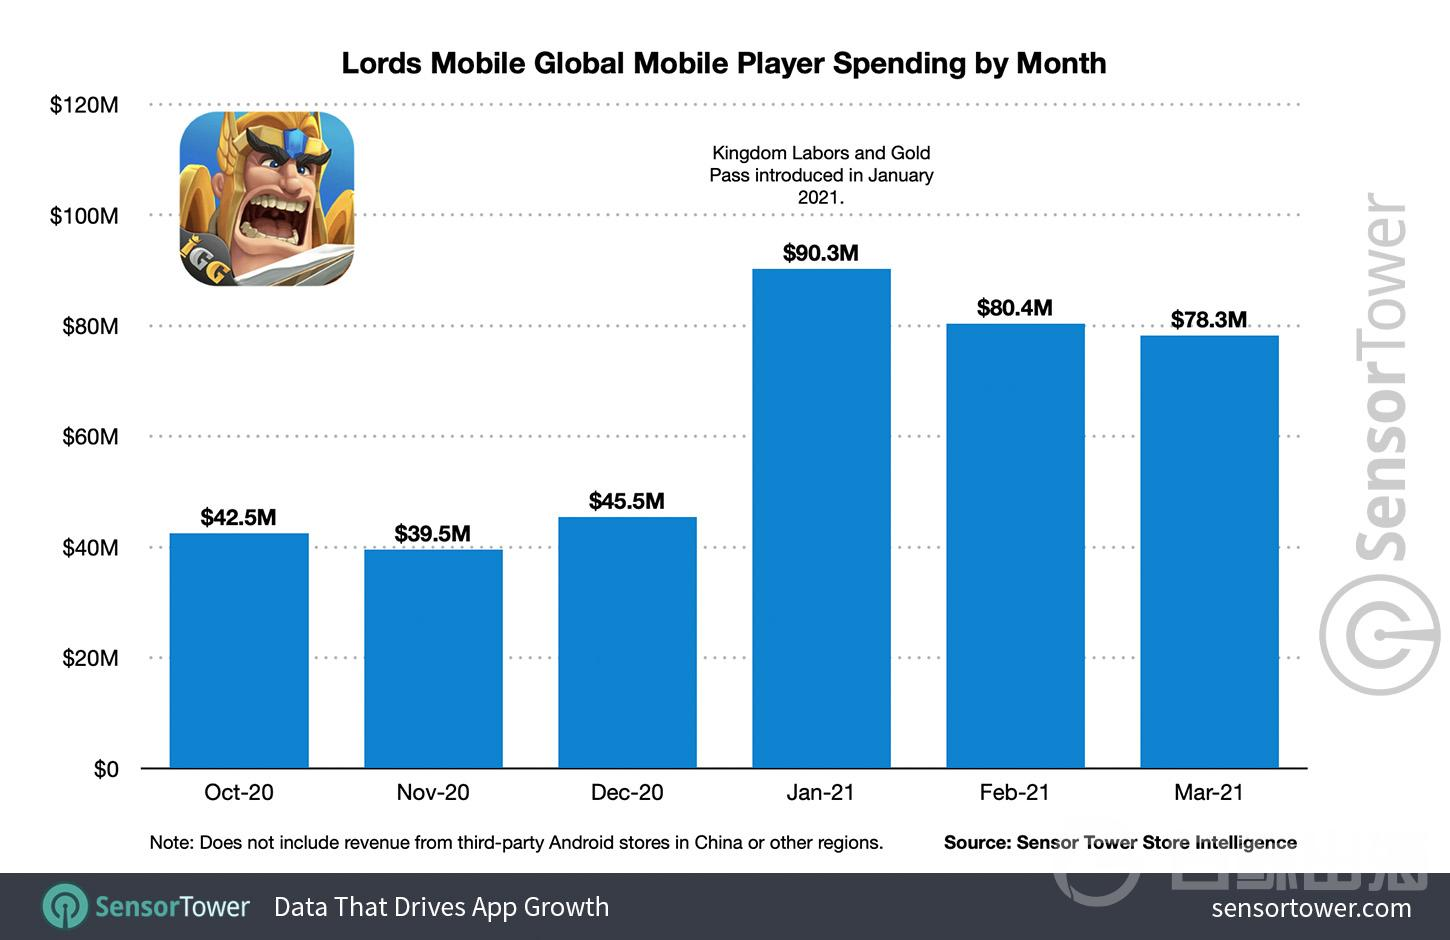 lords-mobile-global-player-spending-by-month.jpg